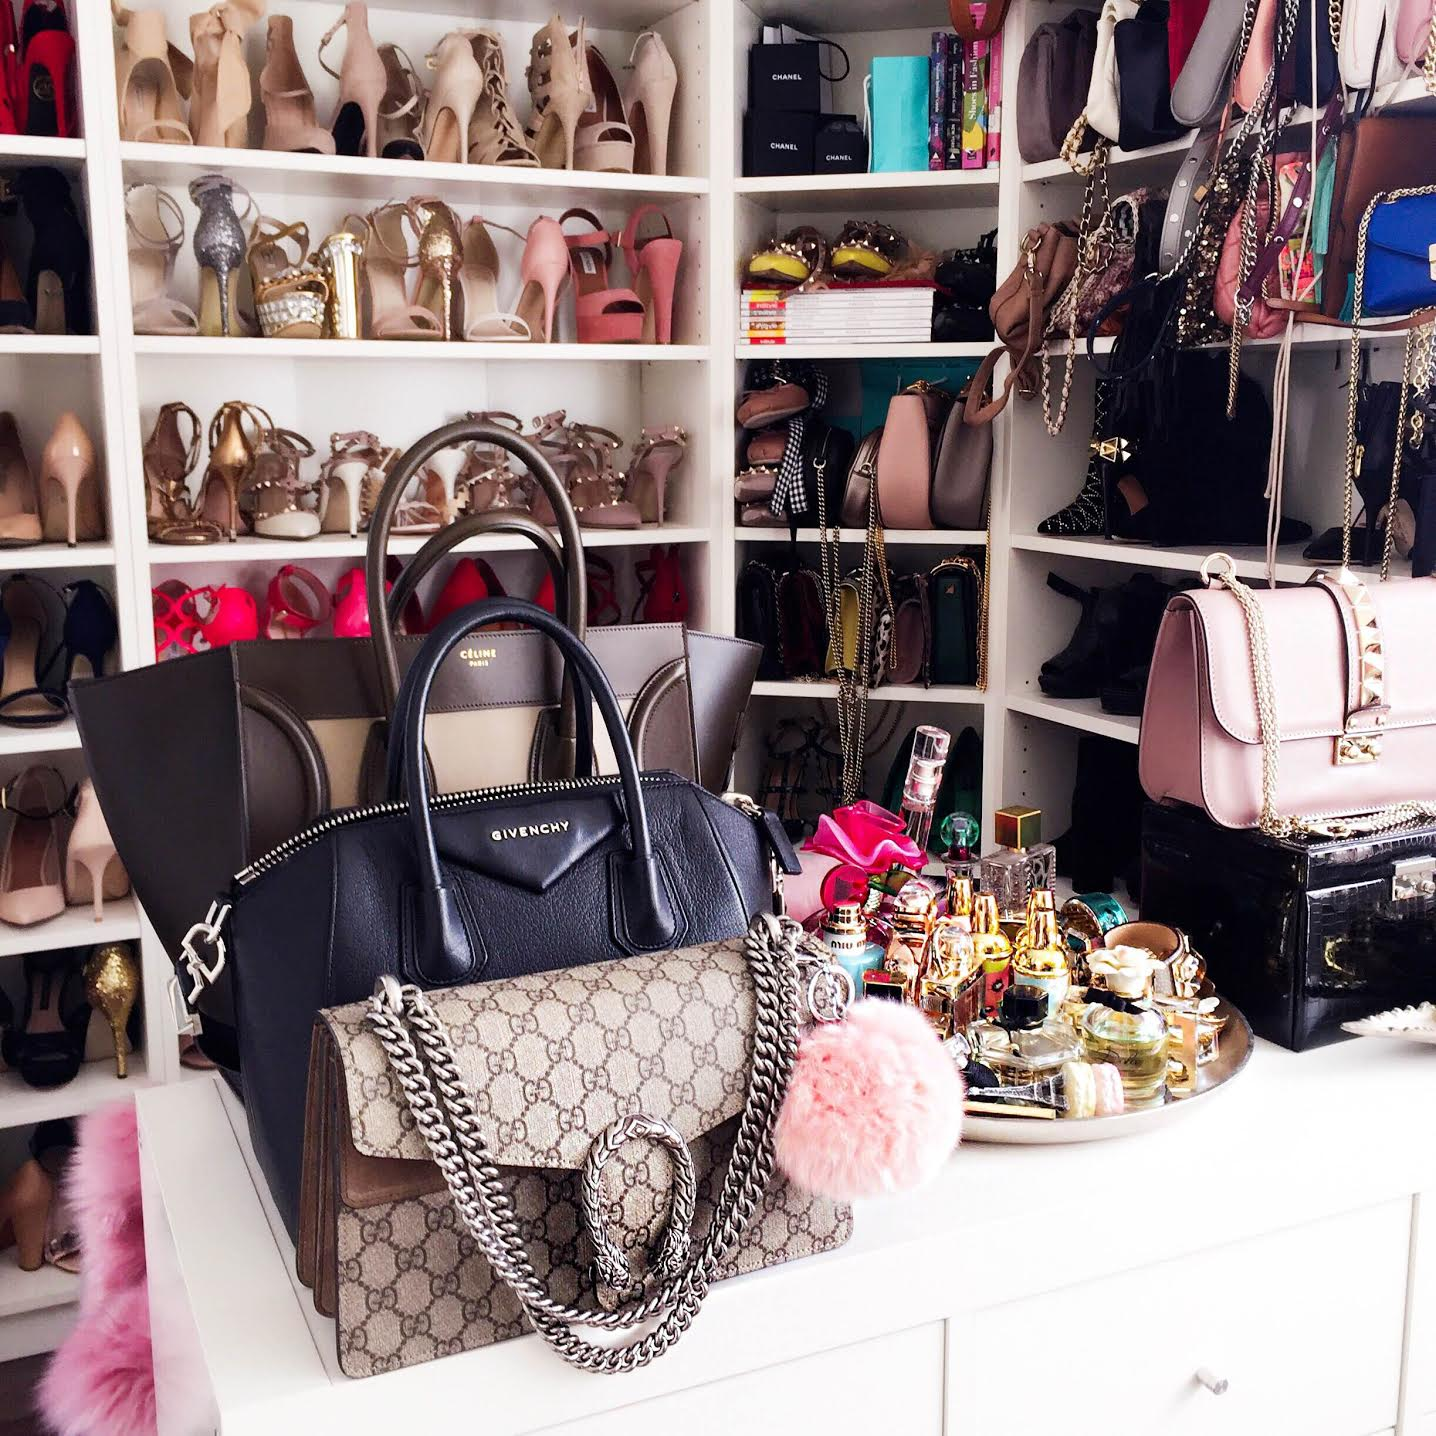 bags-shoe-walk-in-closet-fashionhippieloves